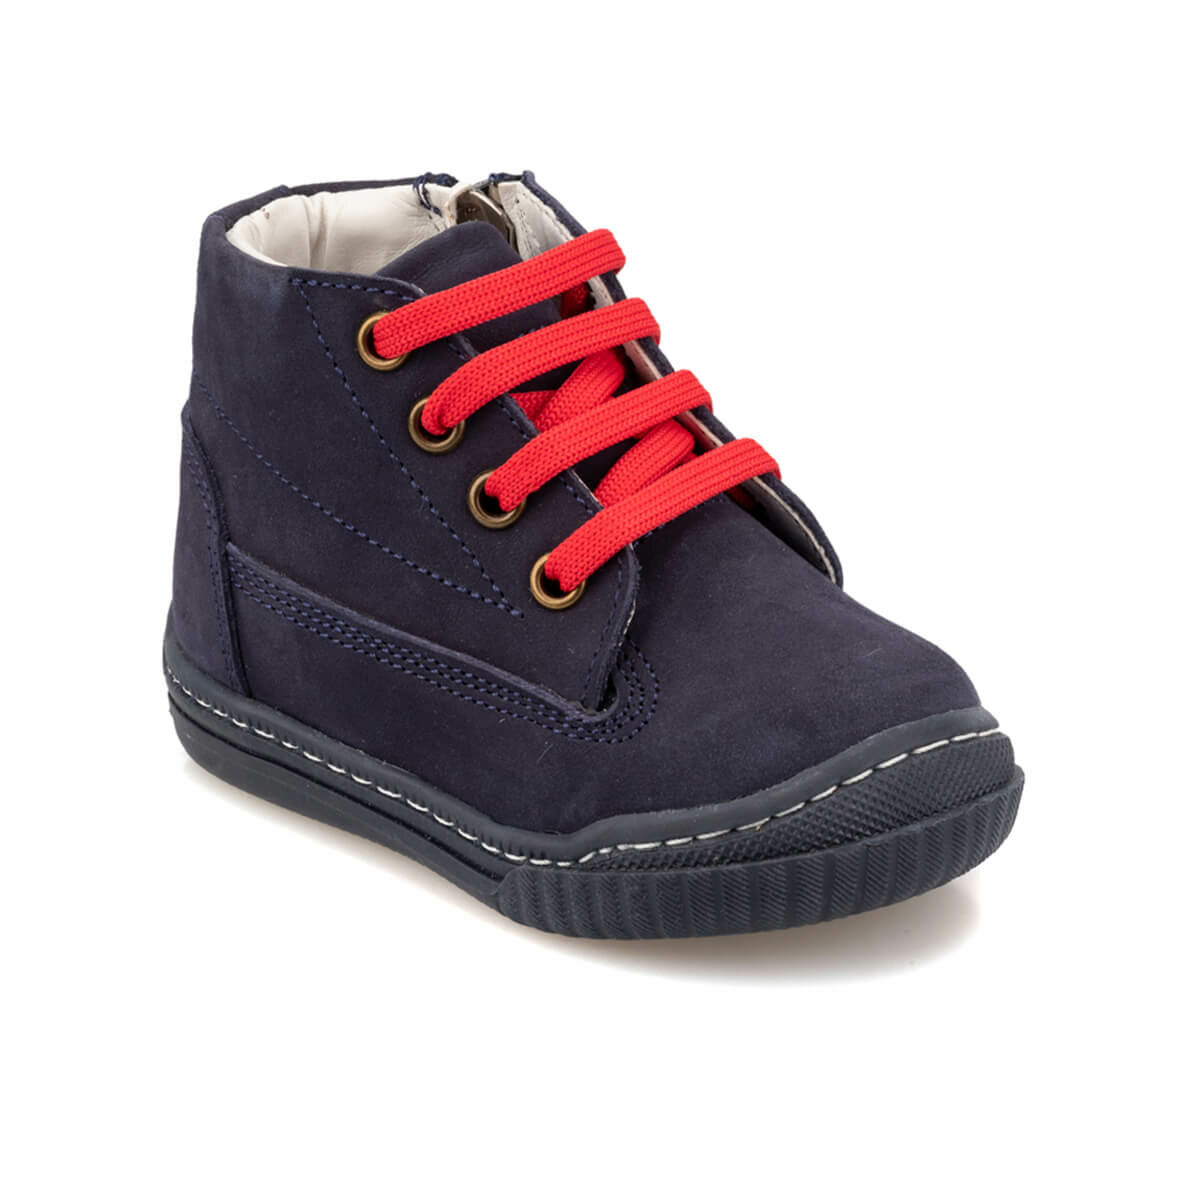 FLO 92.511710.I Navy Blue Male Child Sports Shoes Polaris